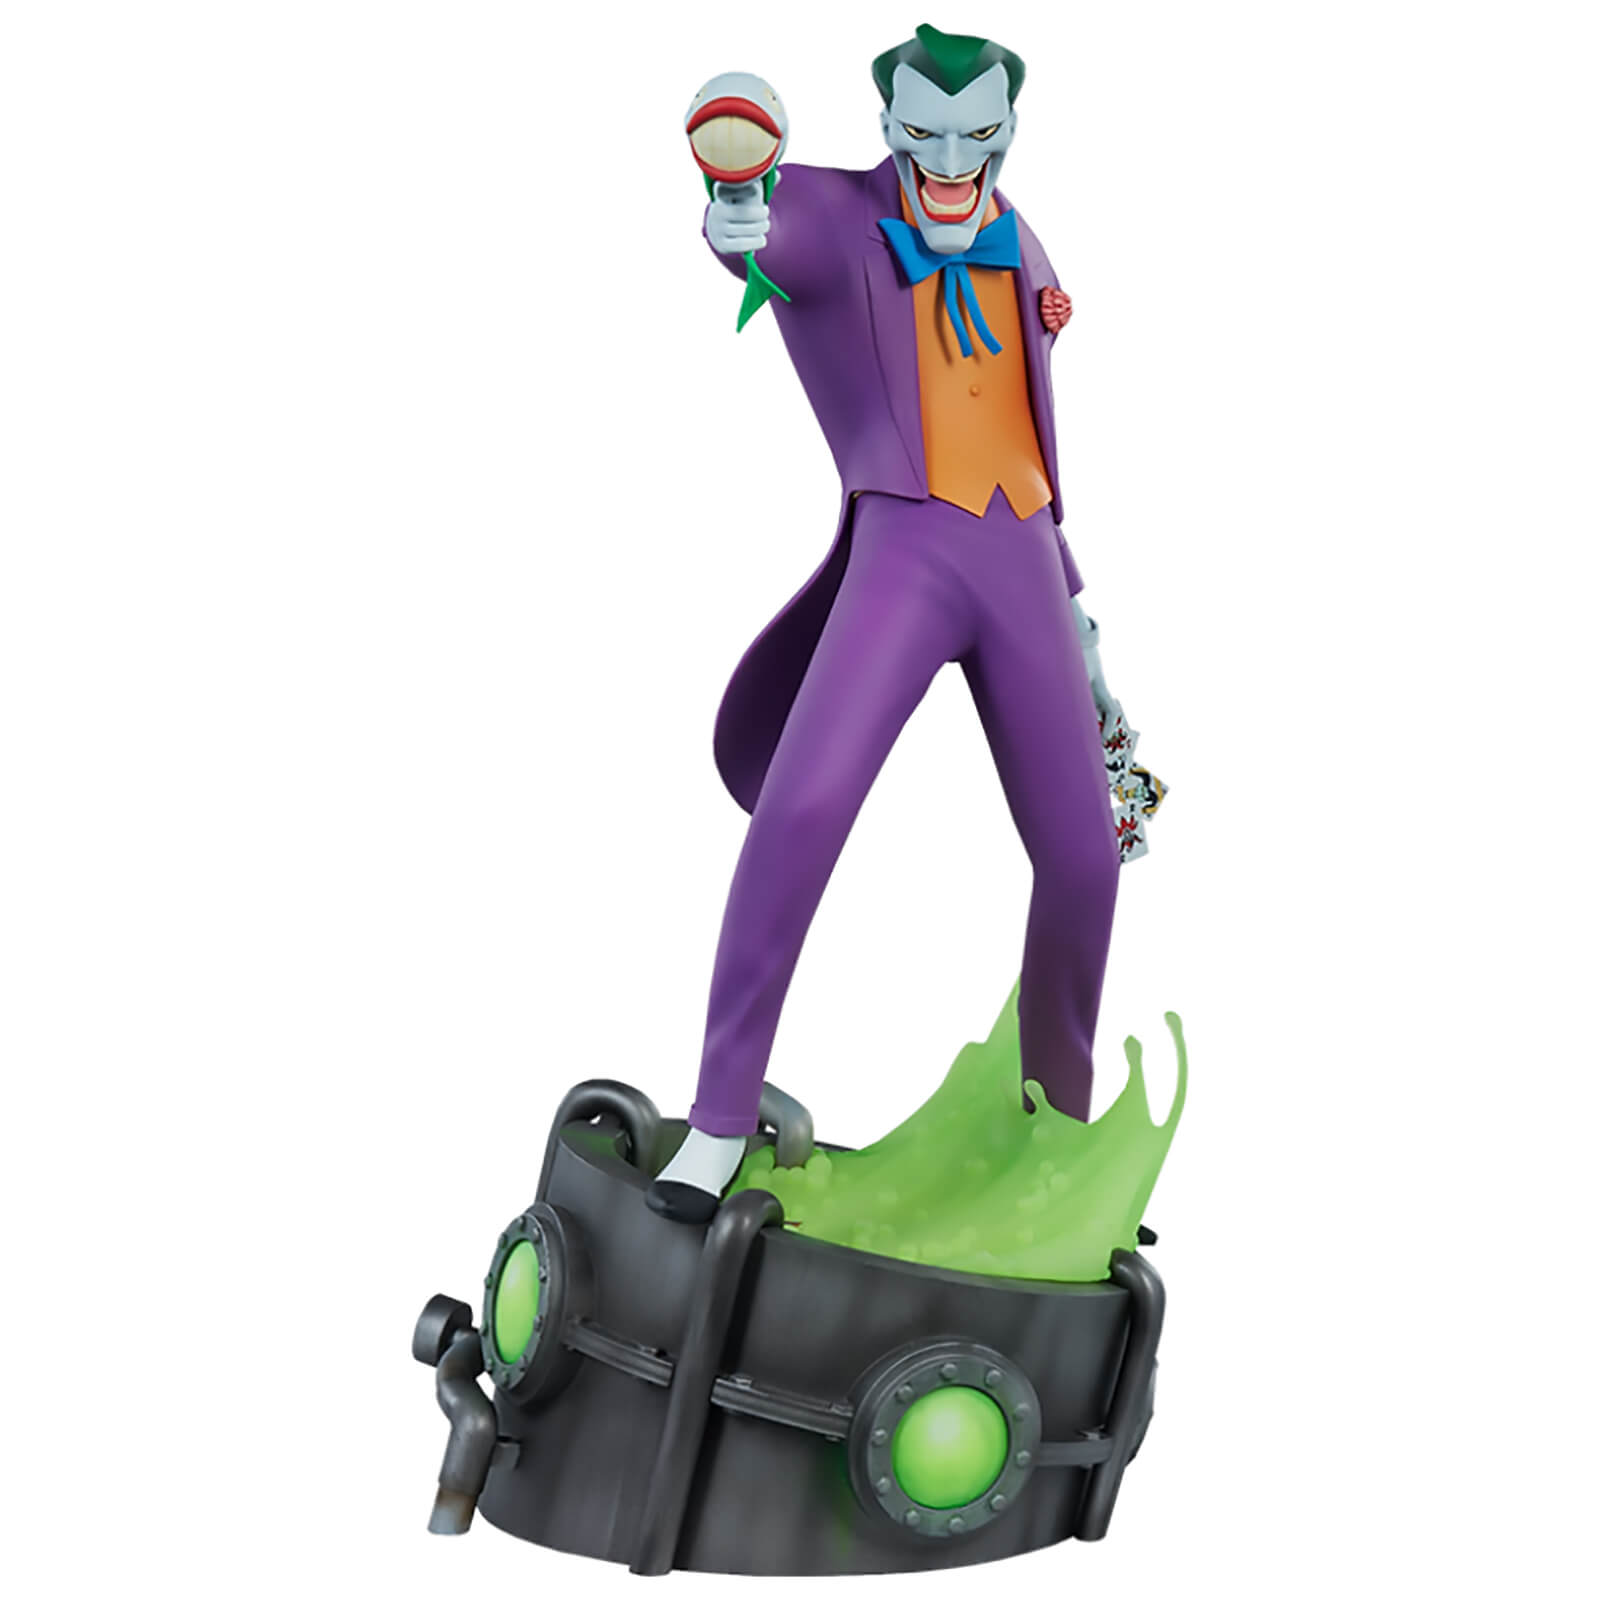 Sideshow Collectibles The Joker 17 Animated Series Collection Statue